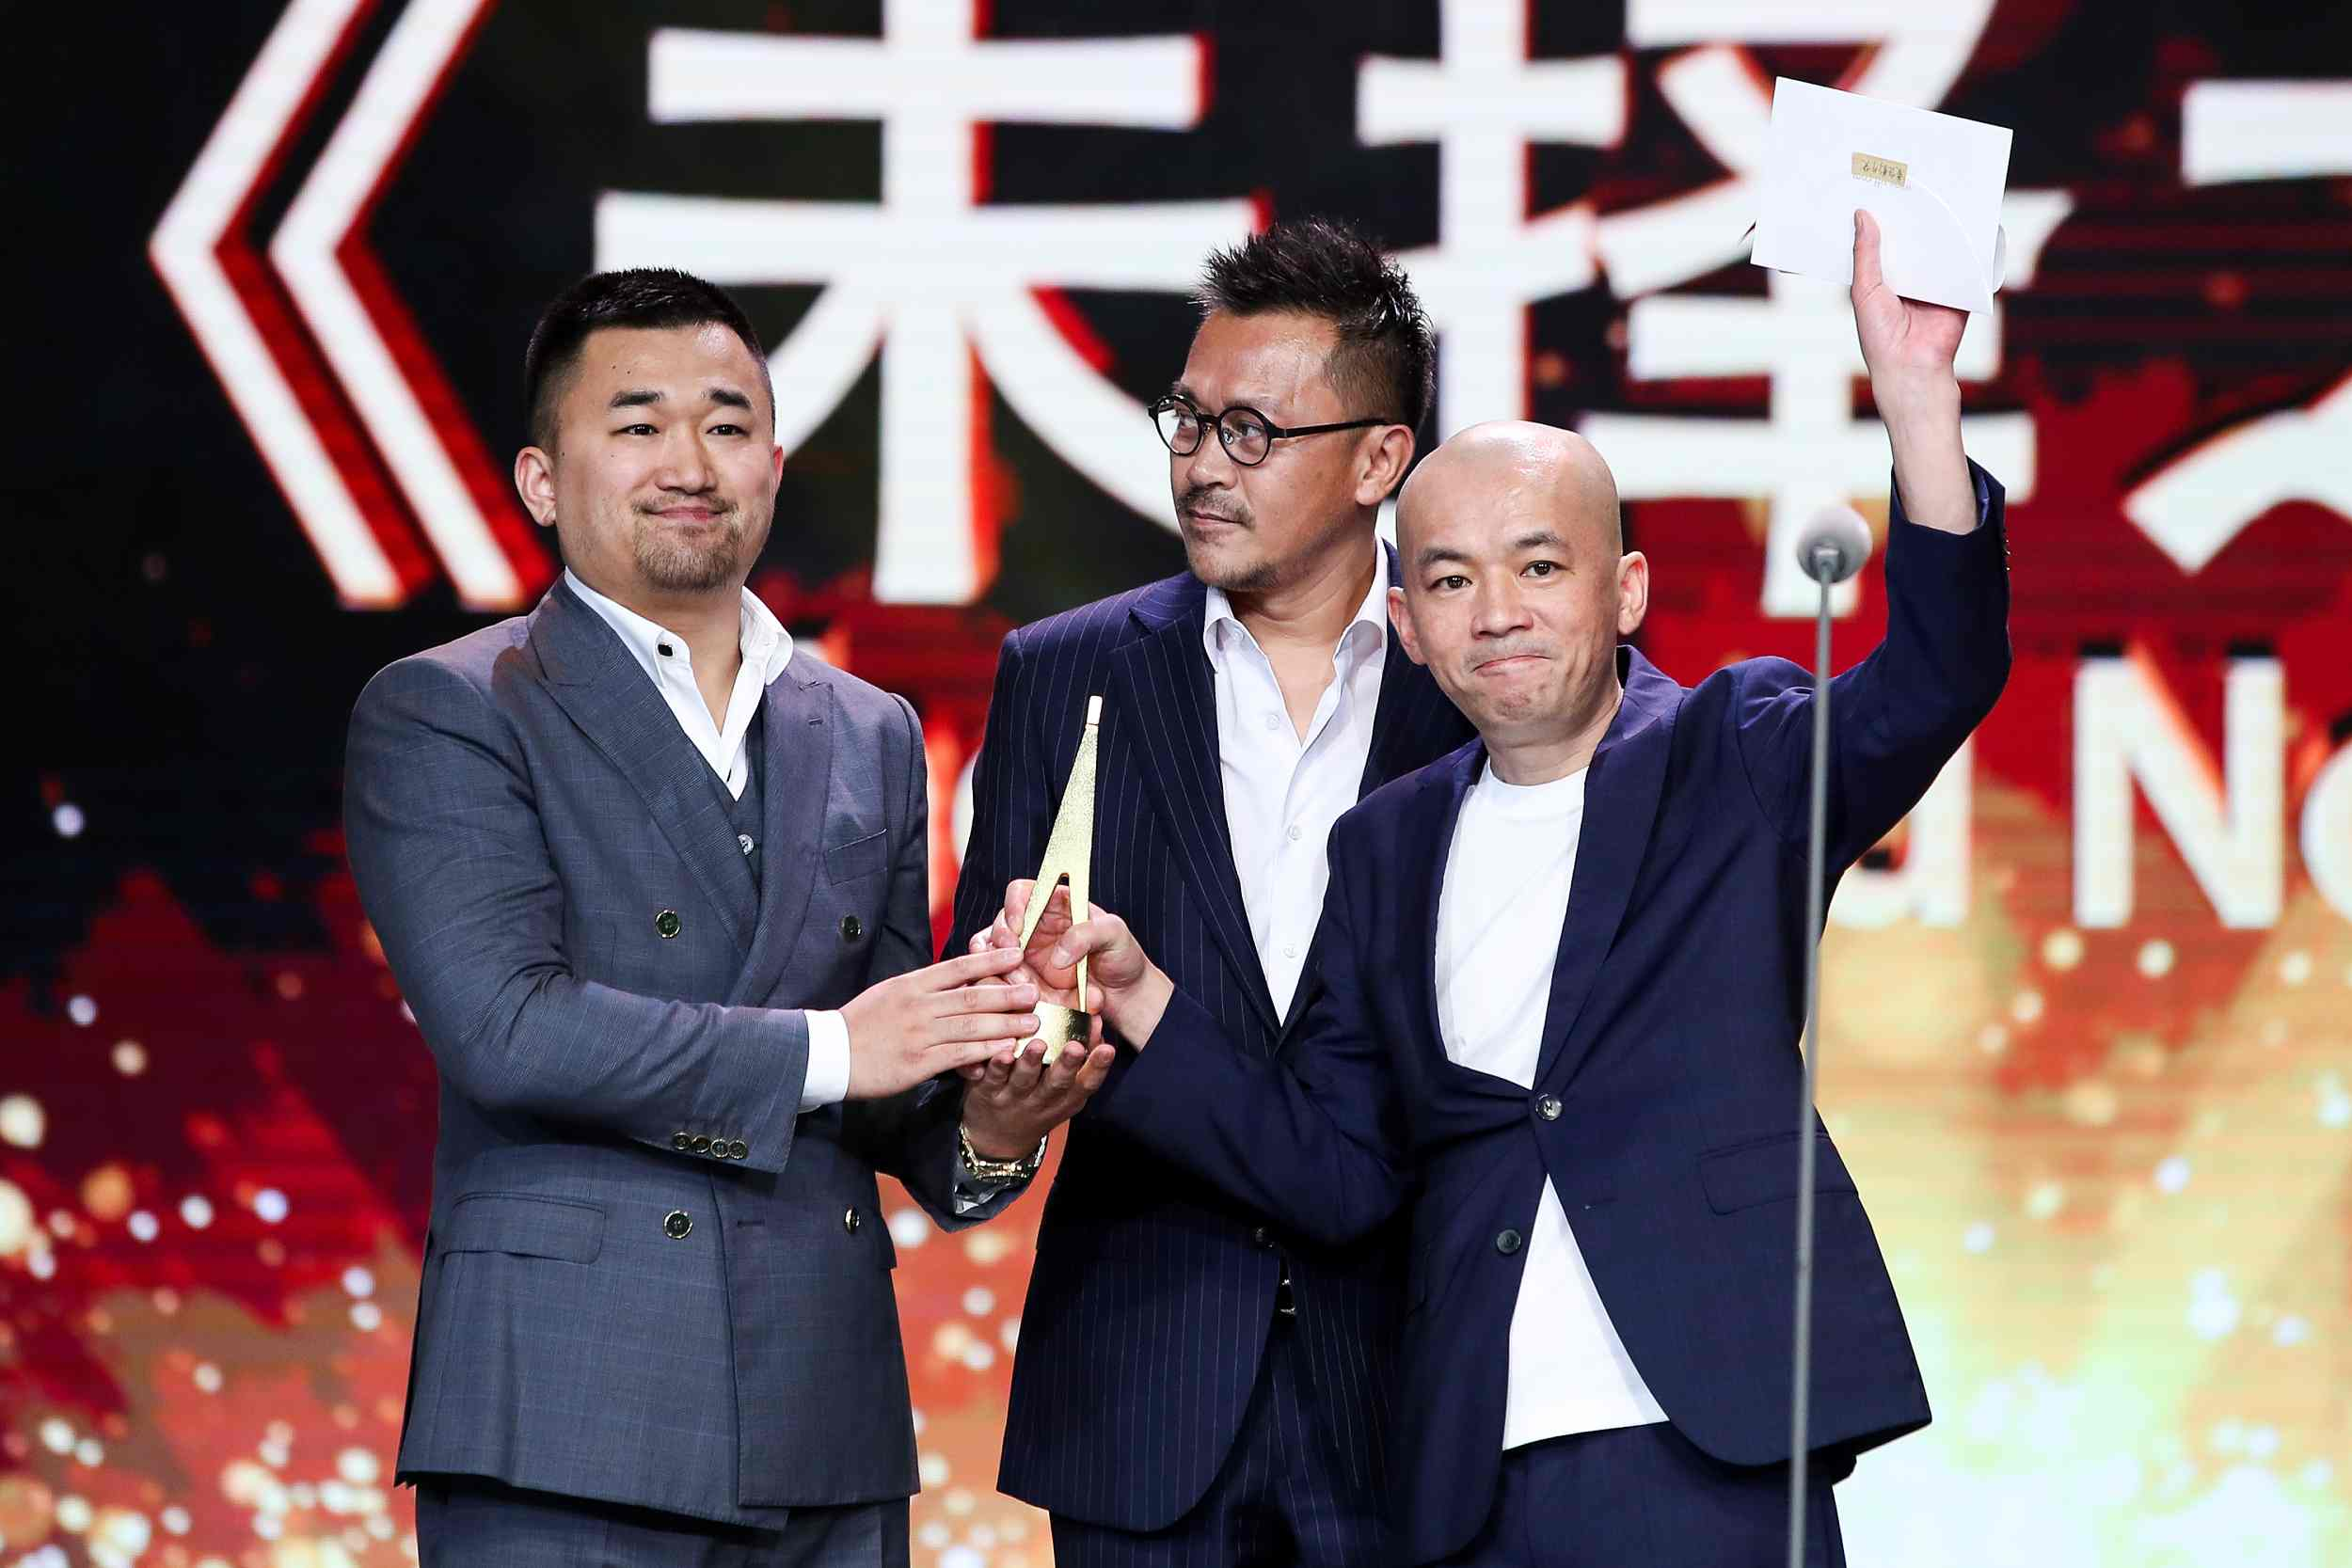 21st SIFF announces winners of Asian New Talent Award